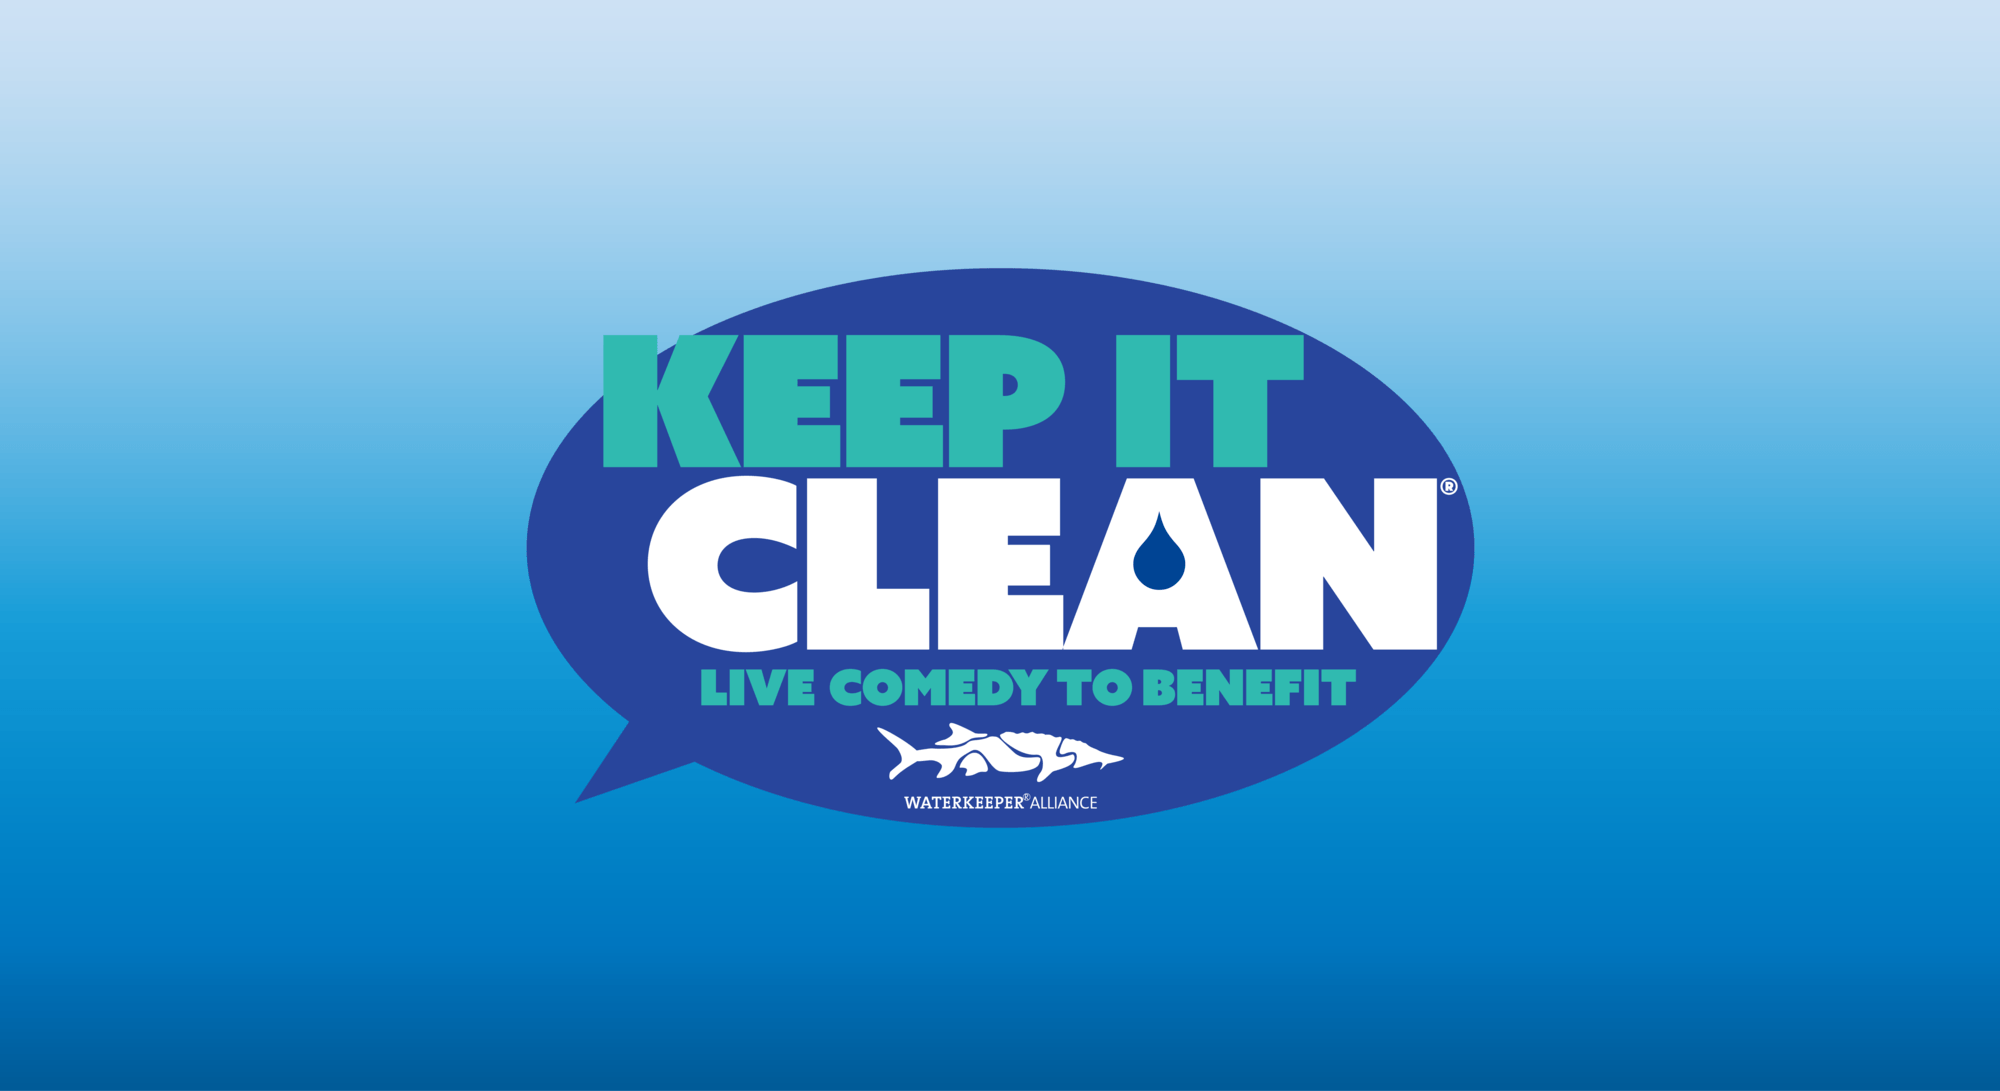 Keep It Clean Keep It Clean Waterkeeper Alliance